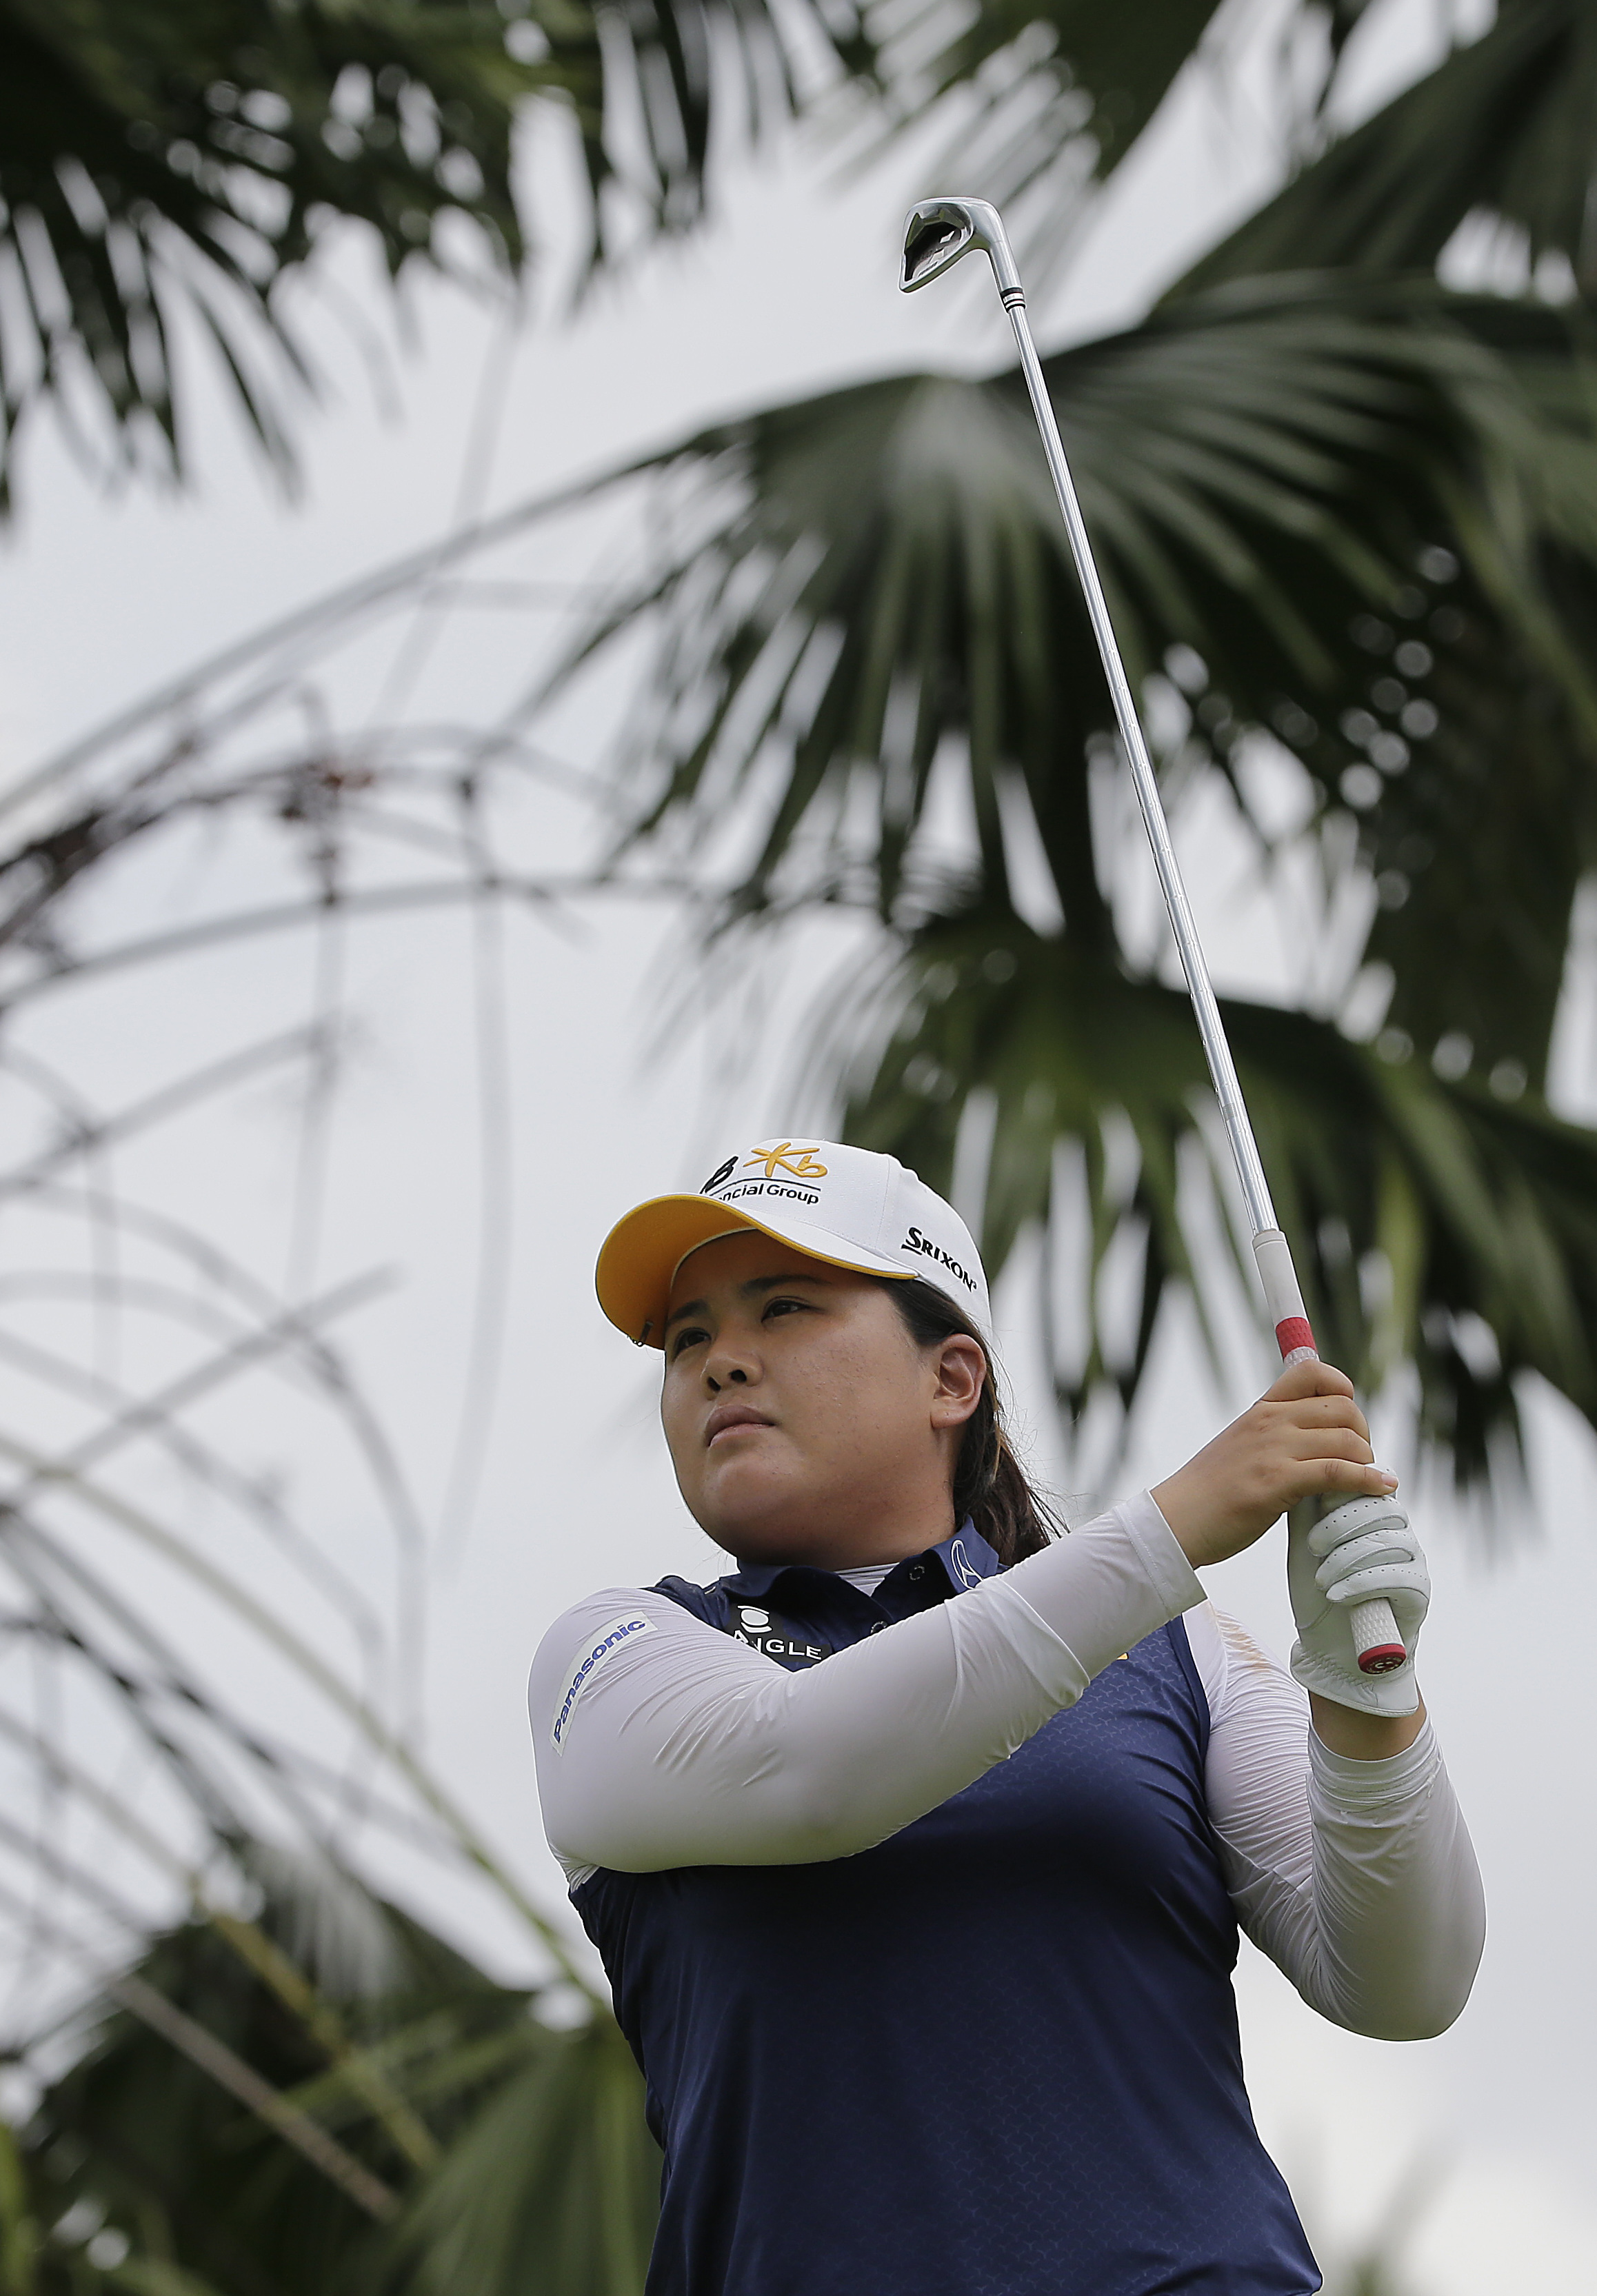 Inbee Park of South Korea watches her tee on the 8th hole during the second round of the HSBC Women's Champions Golf tournament on Friday, March 4, 2016, in Singapore. (AP Photo/Wong Maye-E)